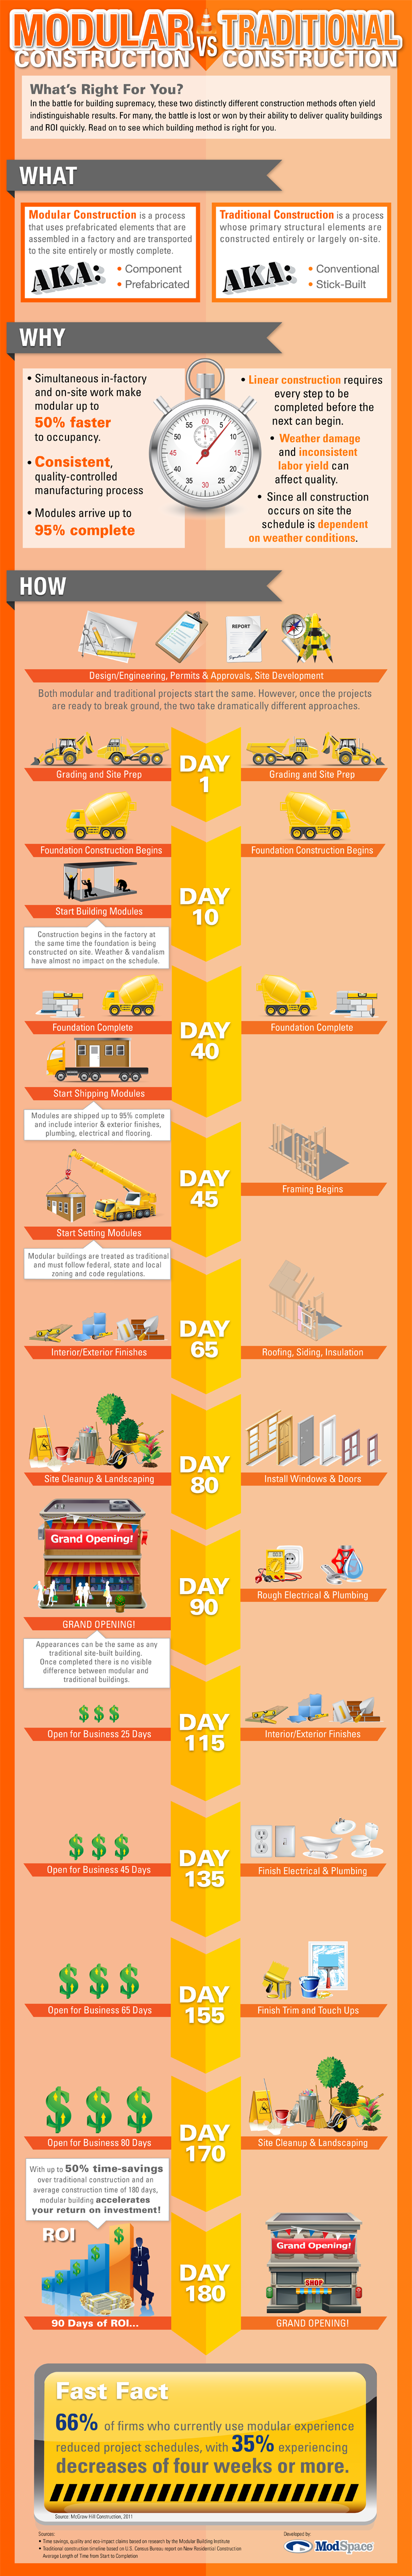 modular vs traditional infographic1 Infographic: Modular vs. Traditional Construction